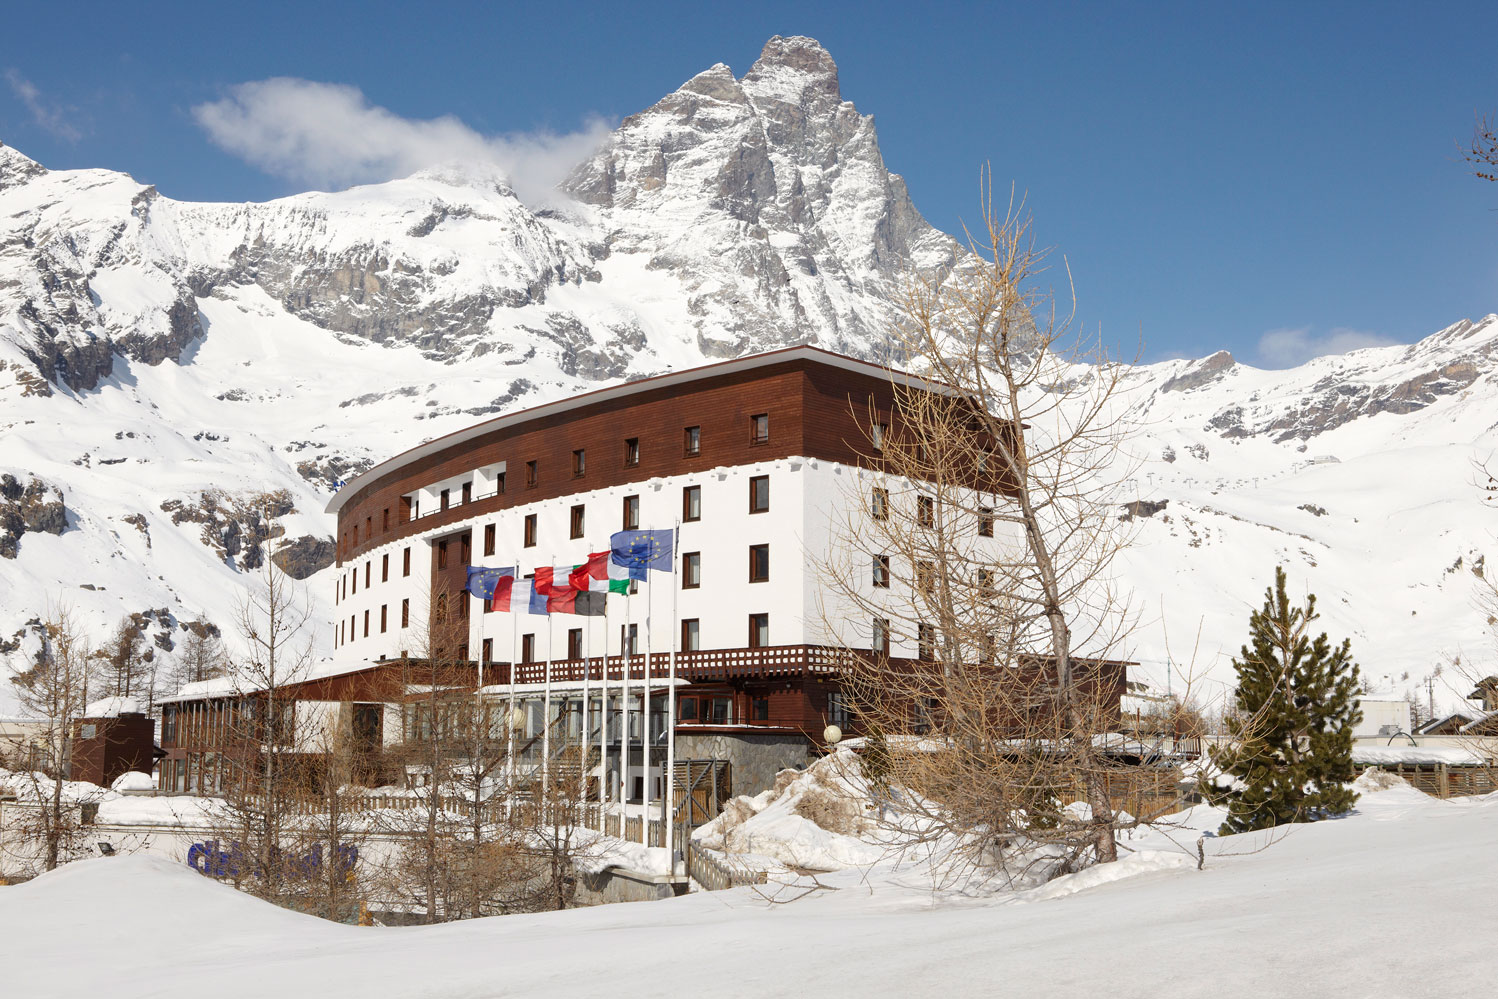 Club med Cervinia in the Alps